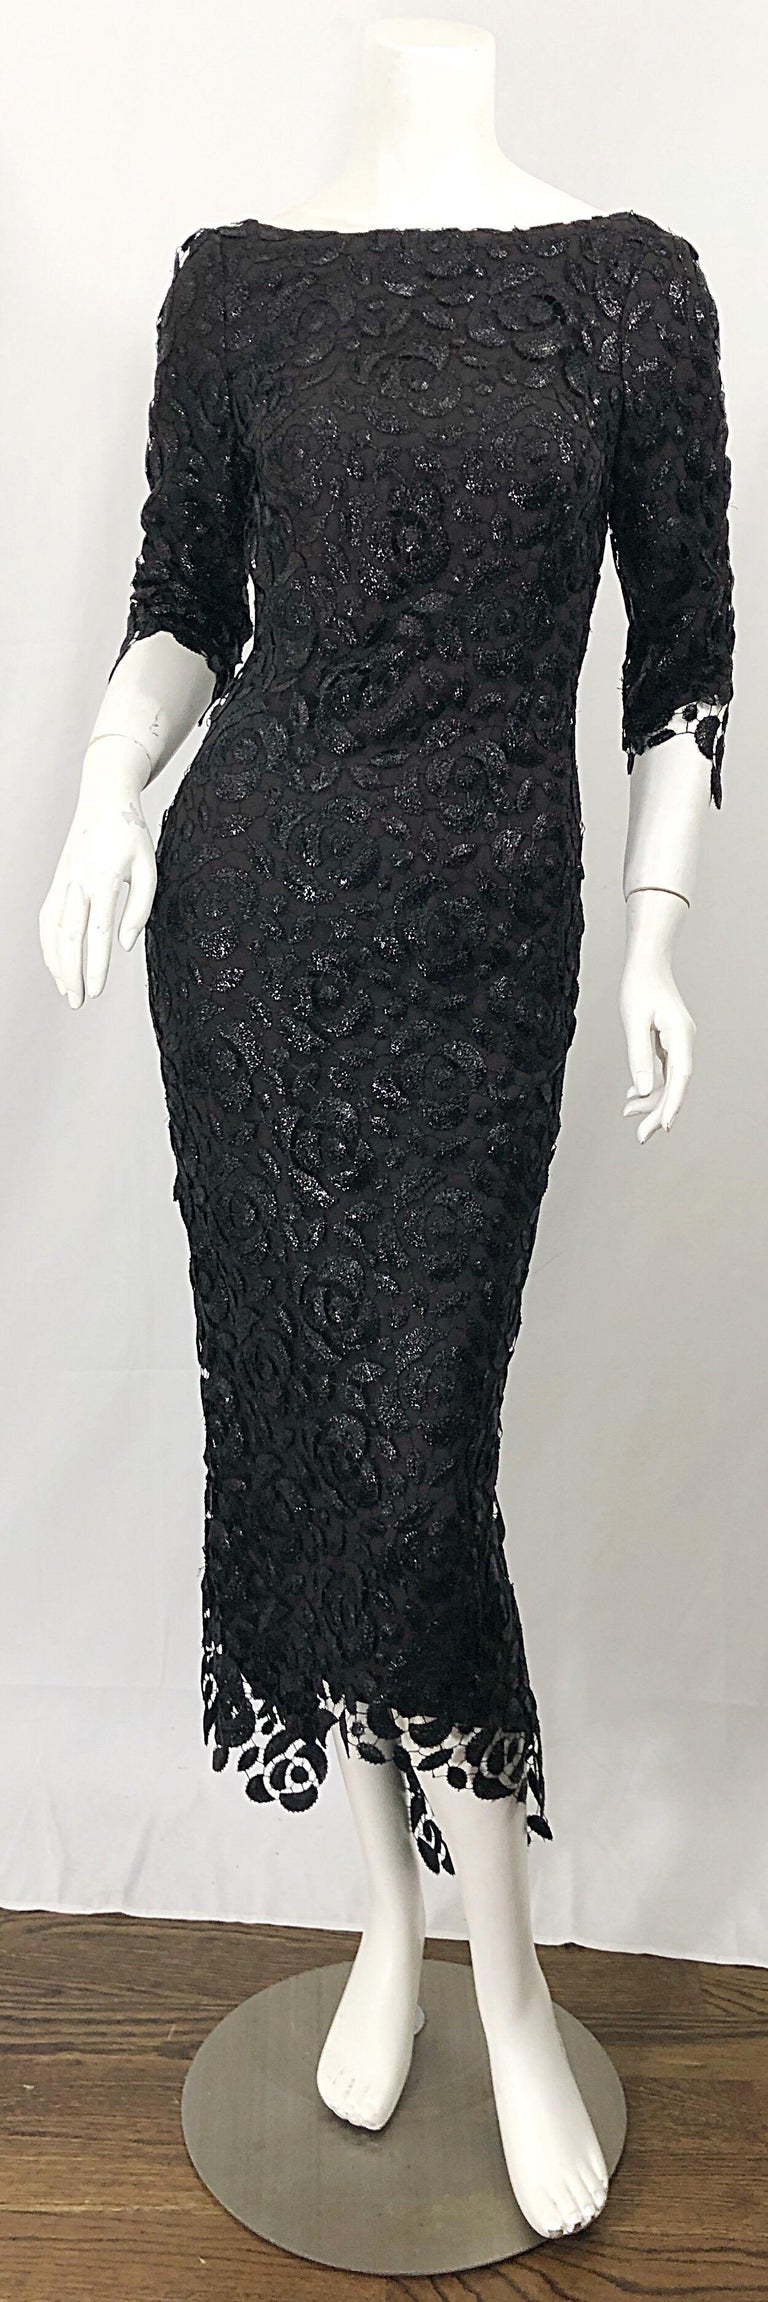 Women's Stunning $10k Vintage Halston Black 3/4 Sleeves Silk Lace Crochet Sz 4 6 Dress For Sale